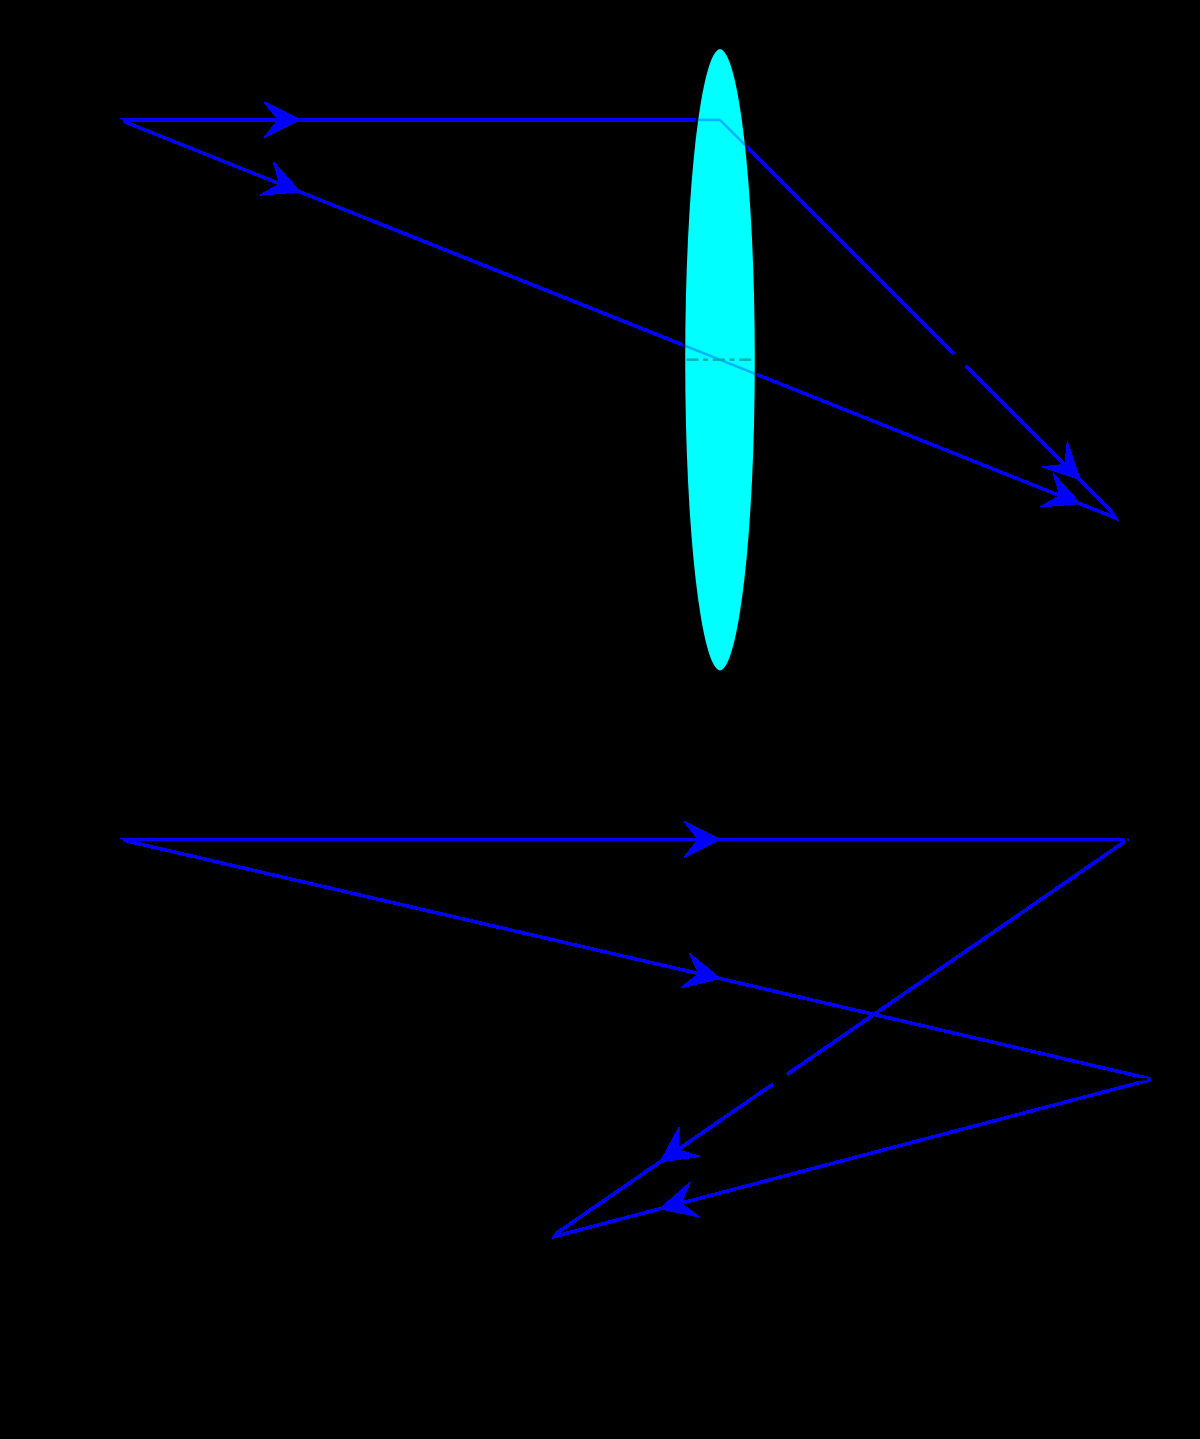 Ray Diagram Definition